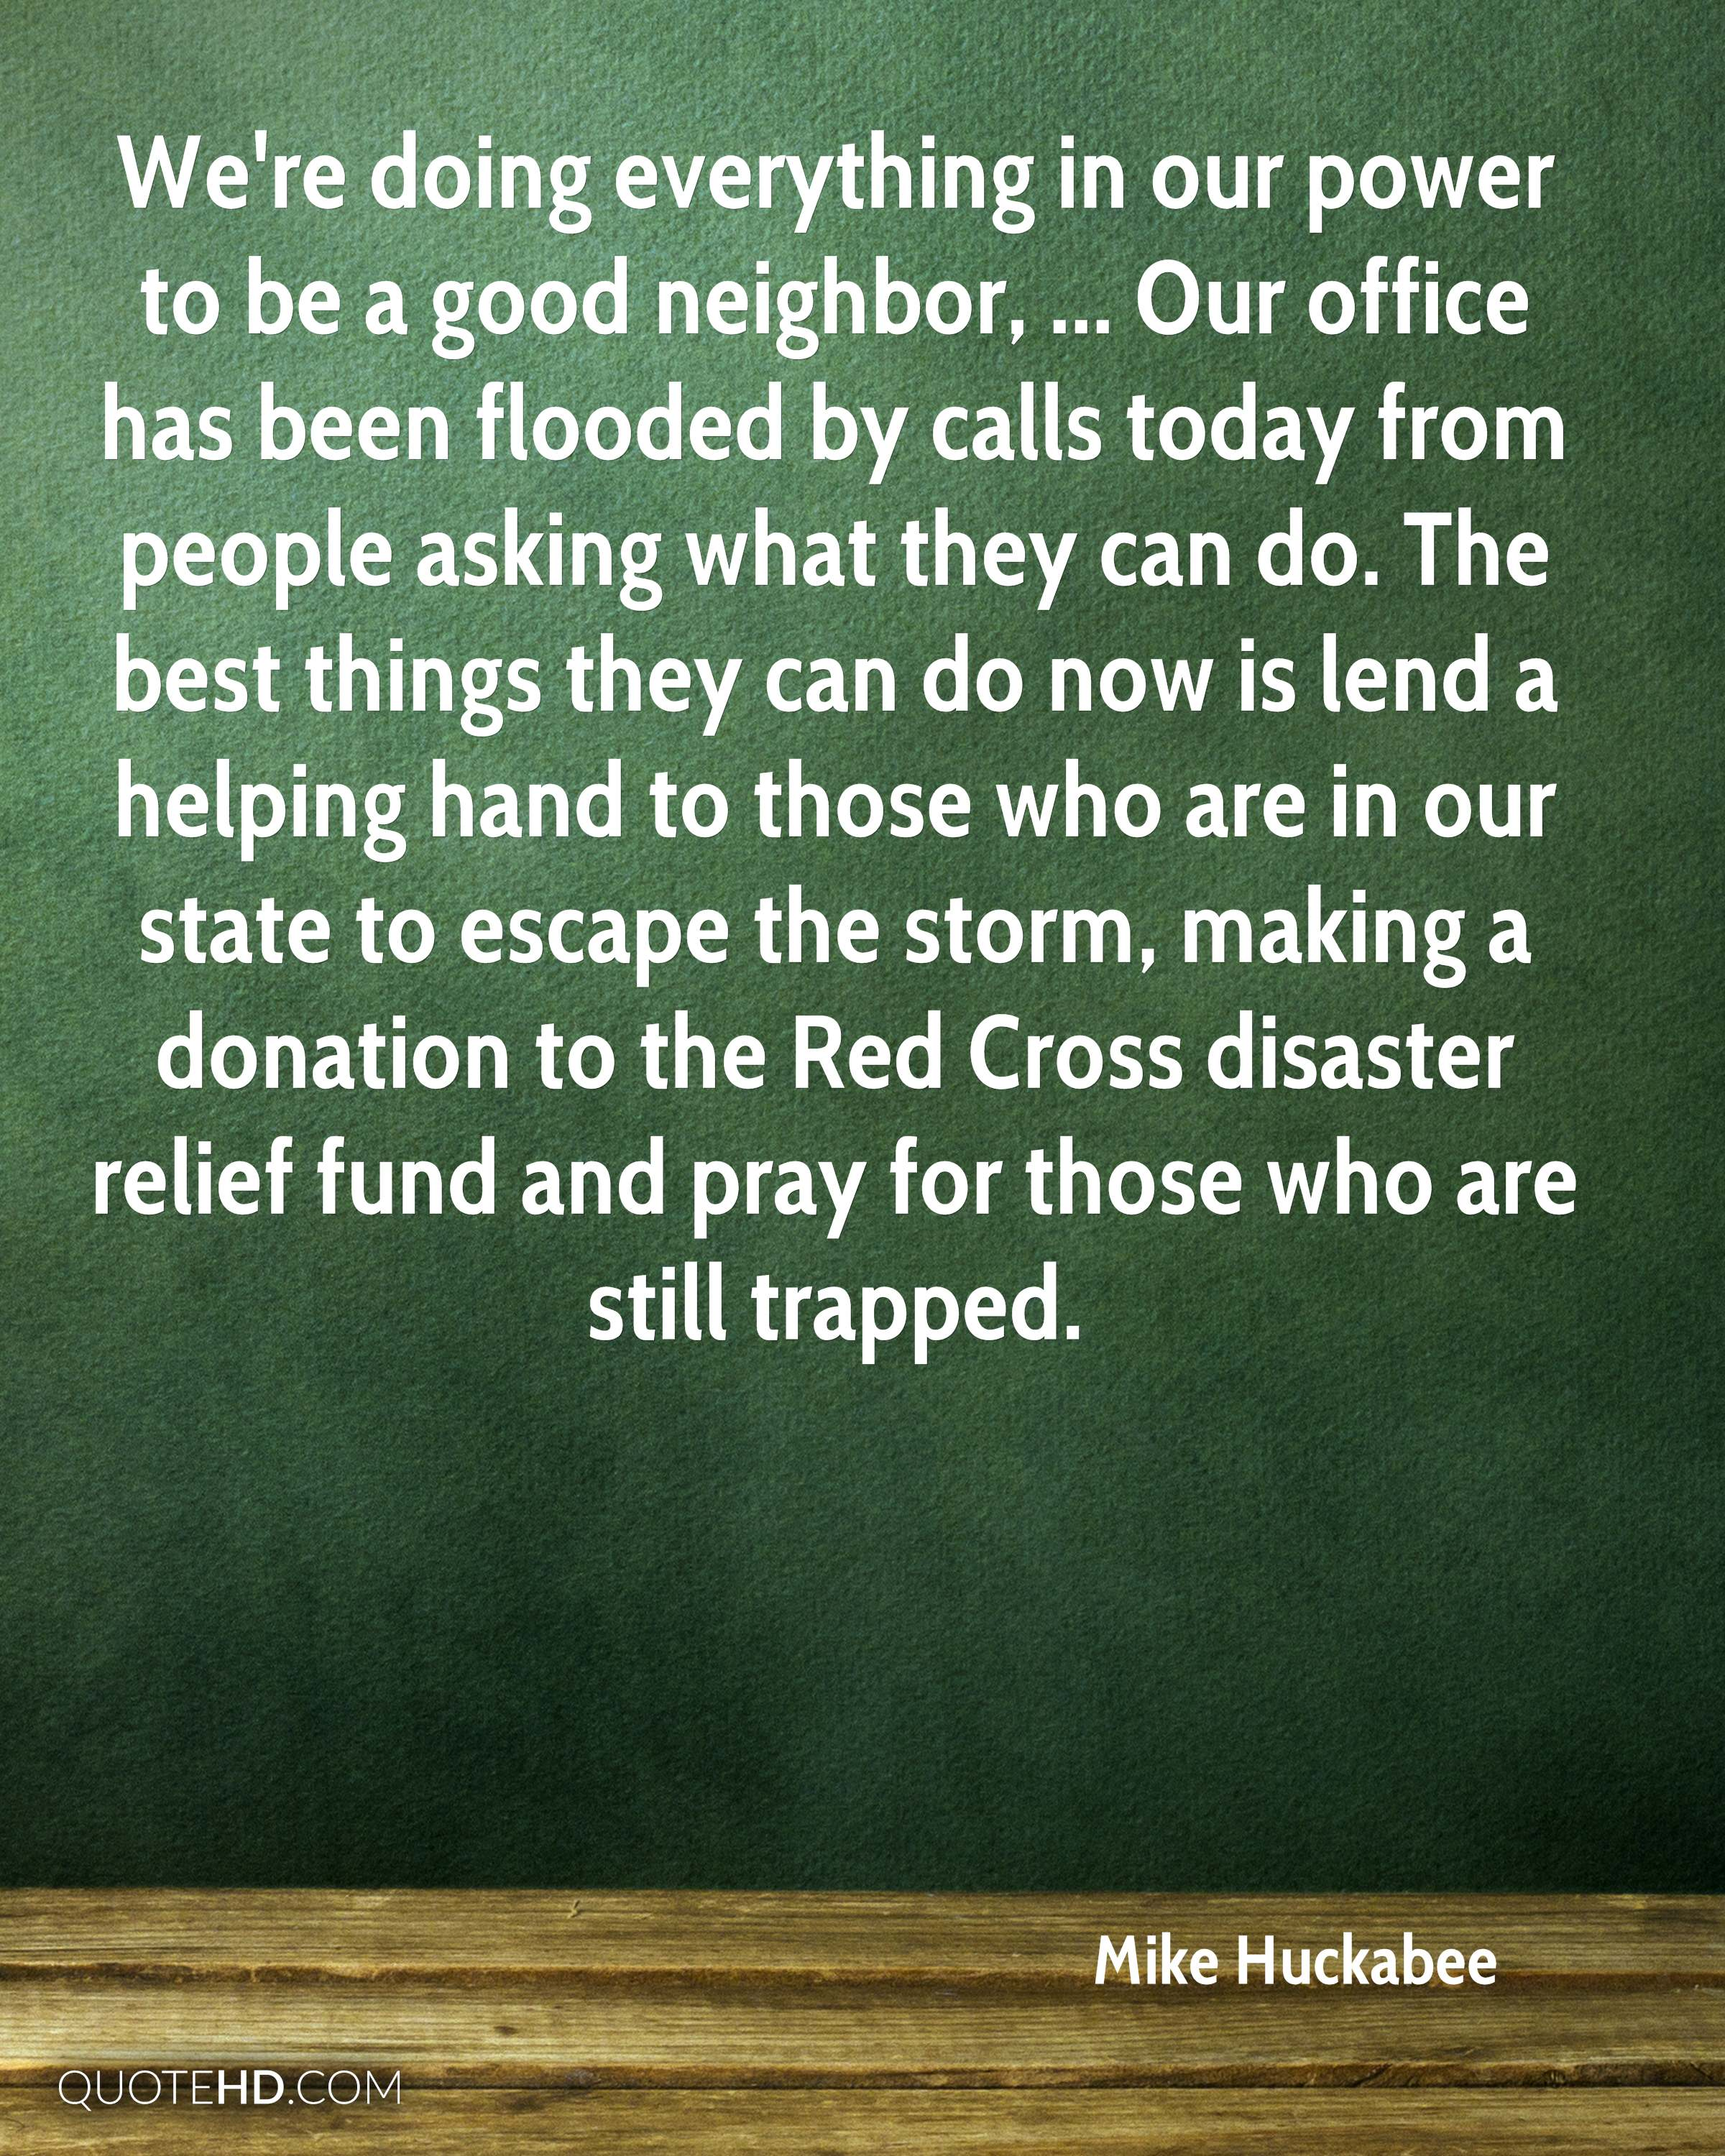 We're doing everything in our power to be a good neighbor, ... Our office has been flooded by calls today from people asking what they can do. The best things they can do now is lend a helping hand to those who are in our state to escape the storm, making a donation to the Red Cross disaster relief fund and pray for those who are still trapped.